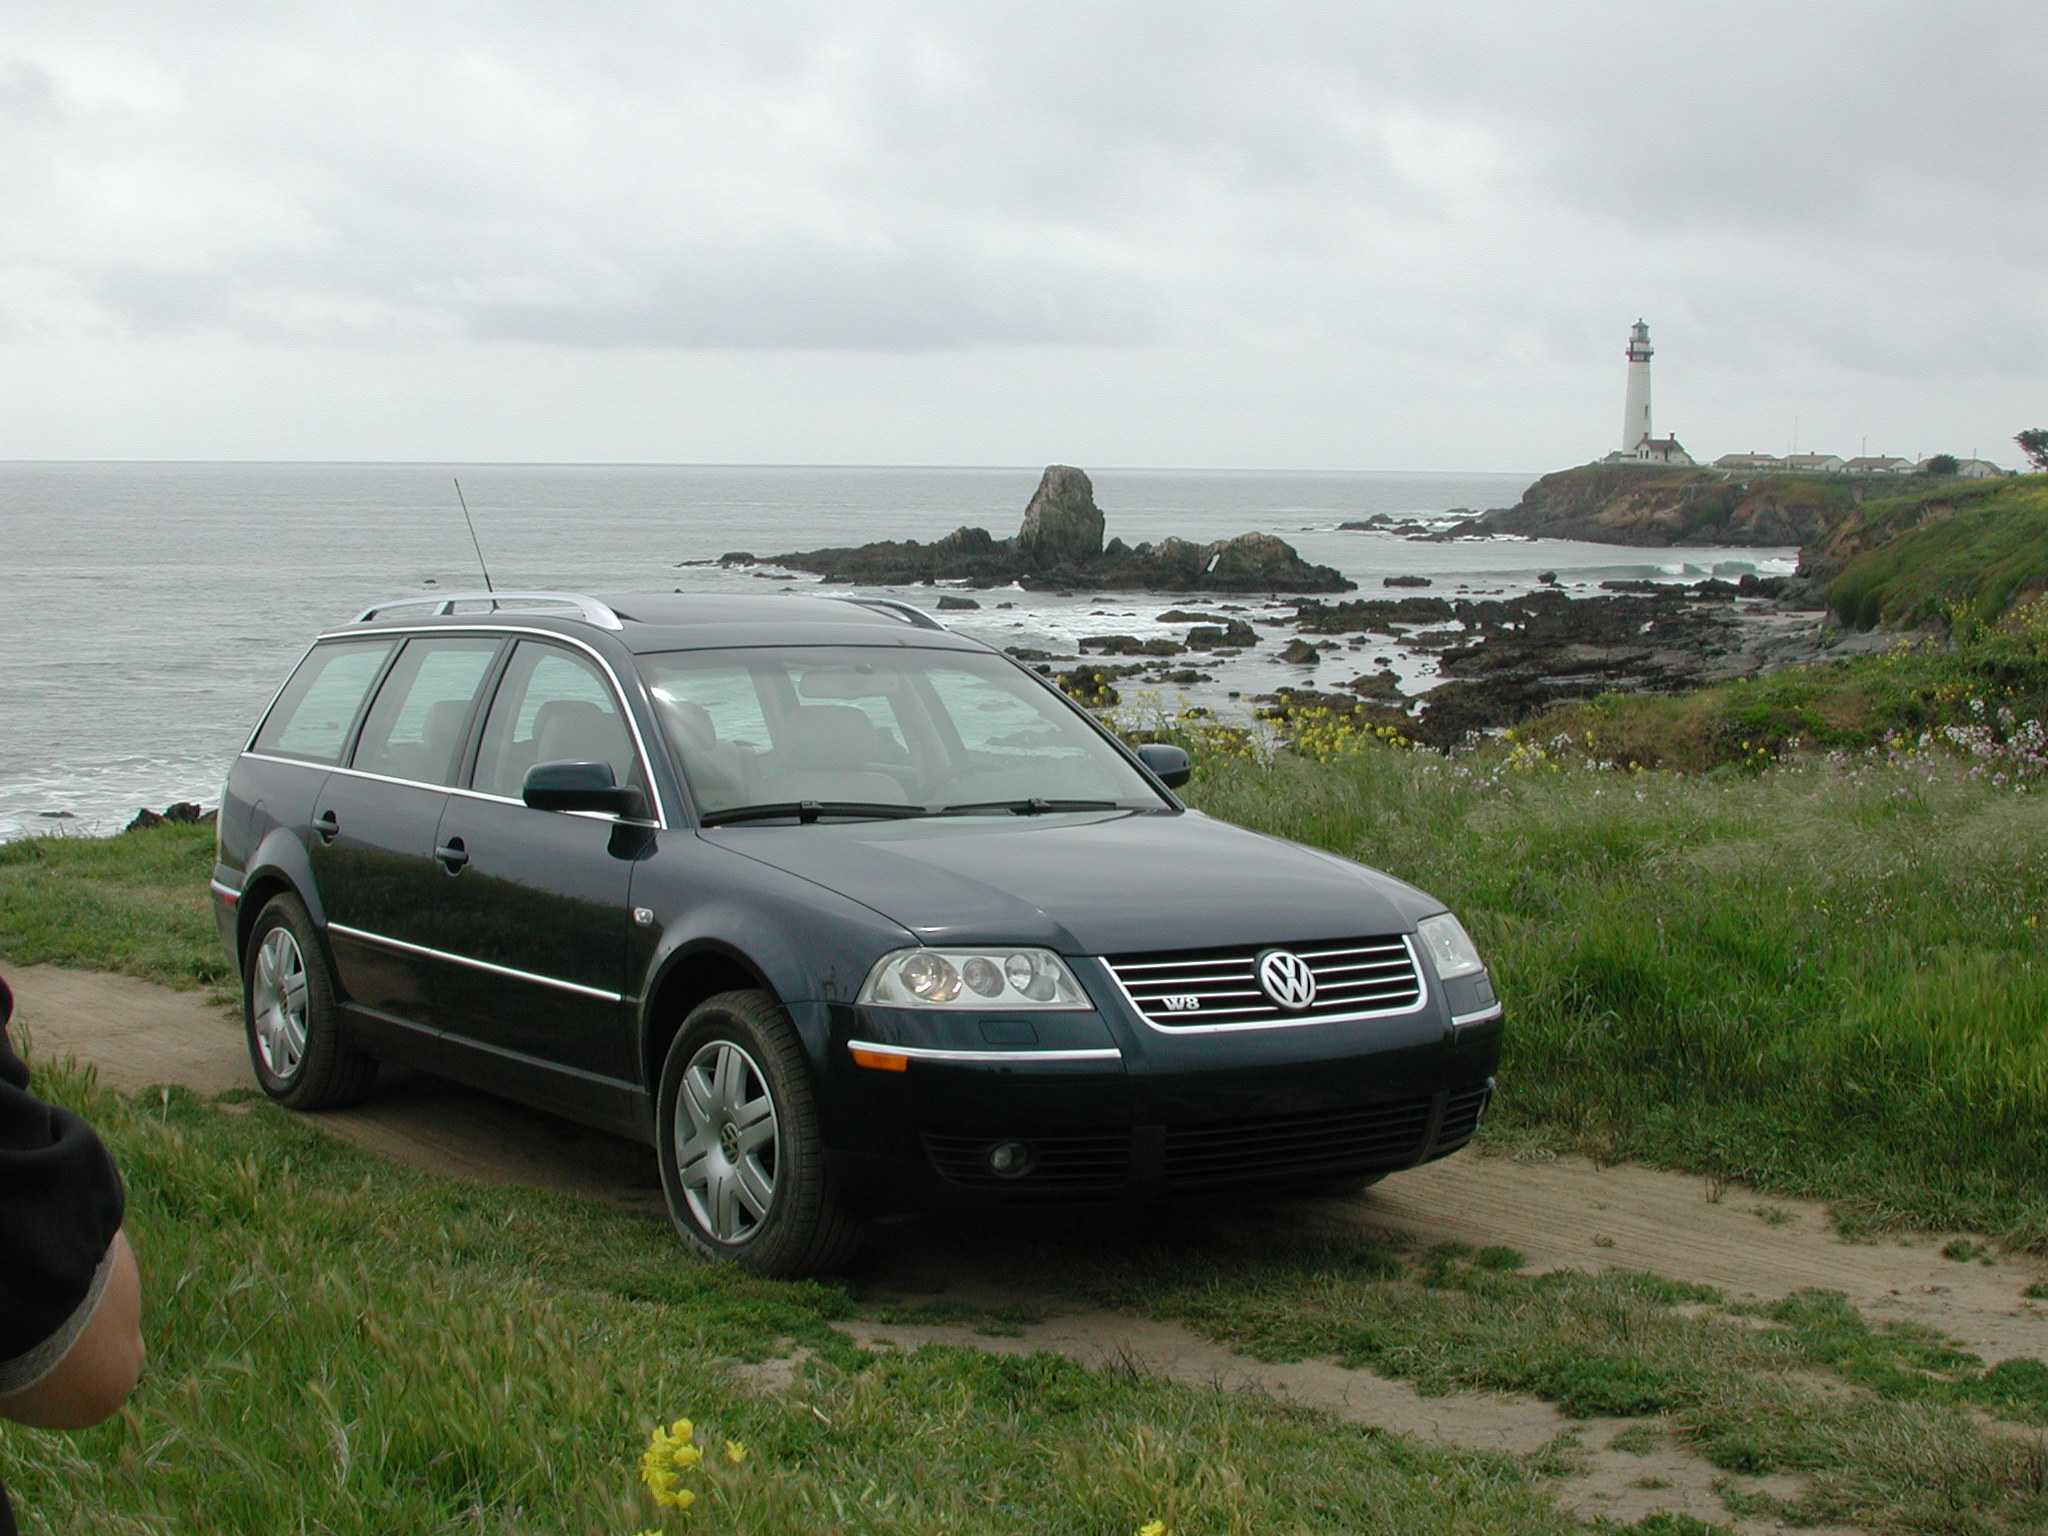 review 2003 vw passat w8. Black Bedroom Furniture Sets. Home Design Ideas